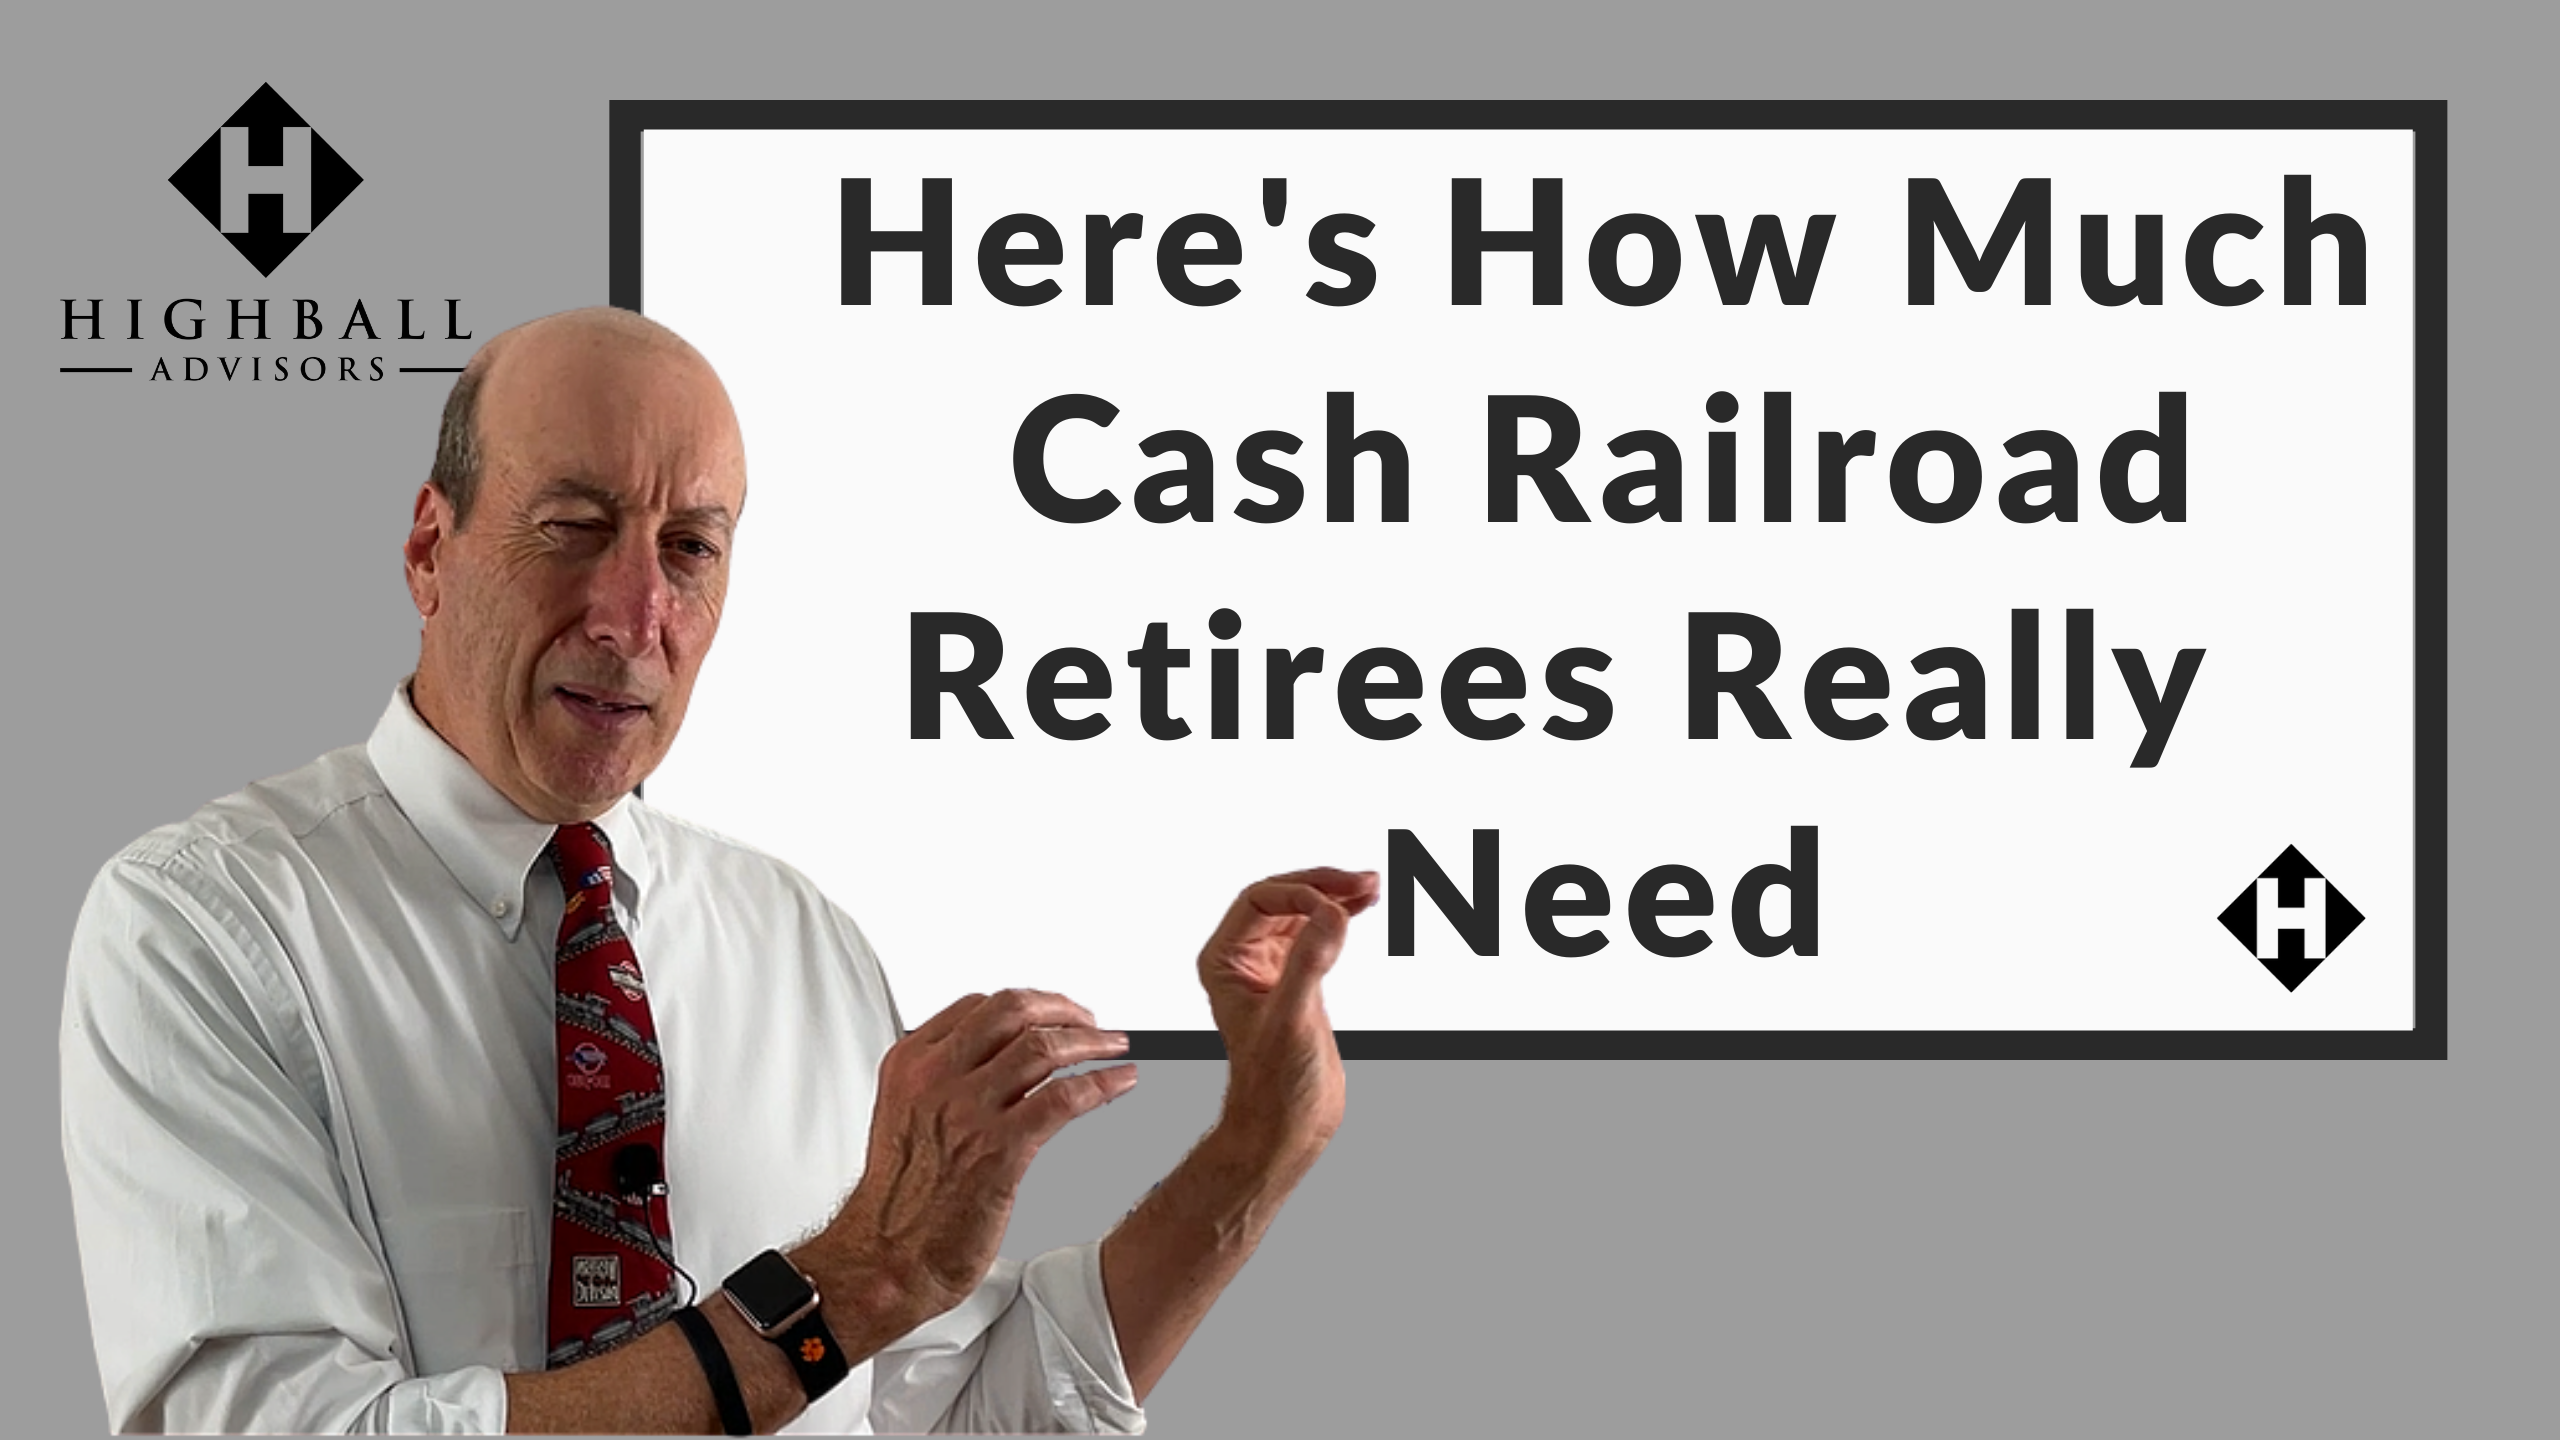 Here's How Much Cash Railroad Retirees Really Need Thumbnail